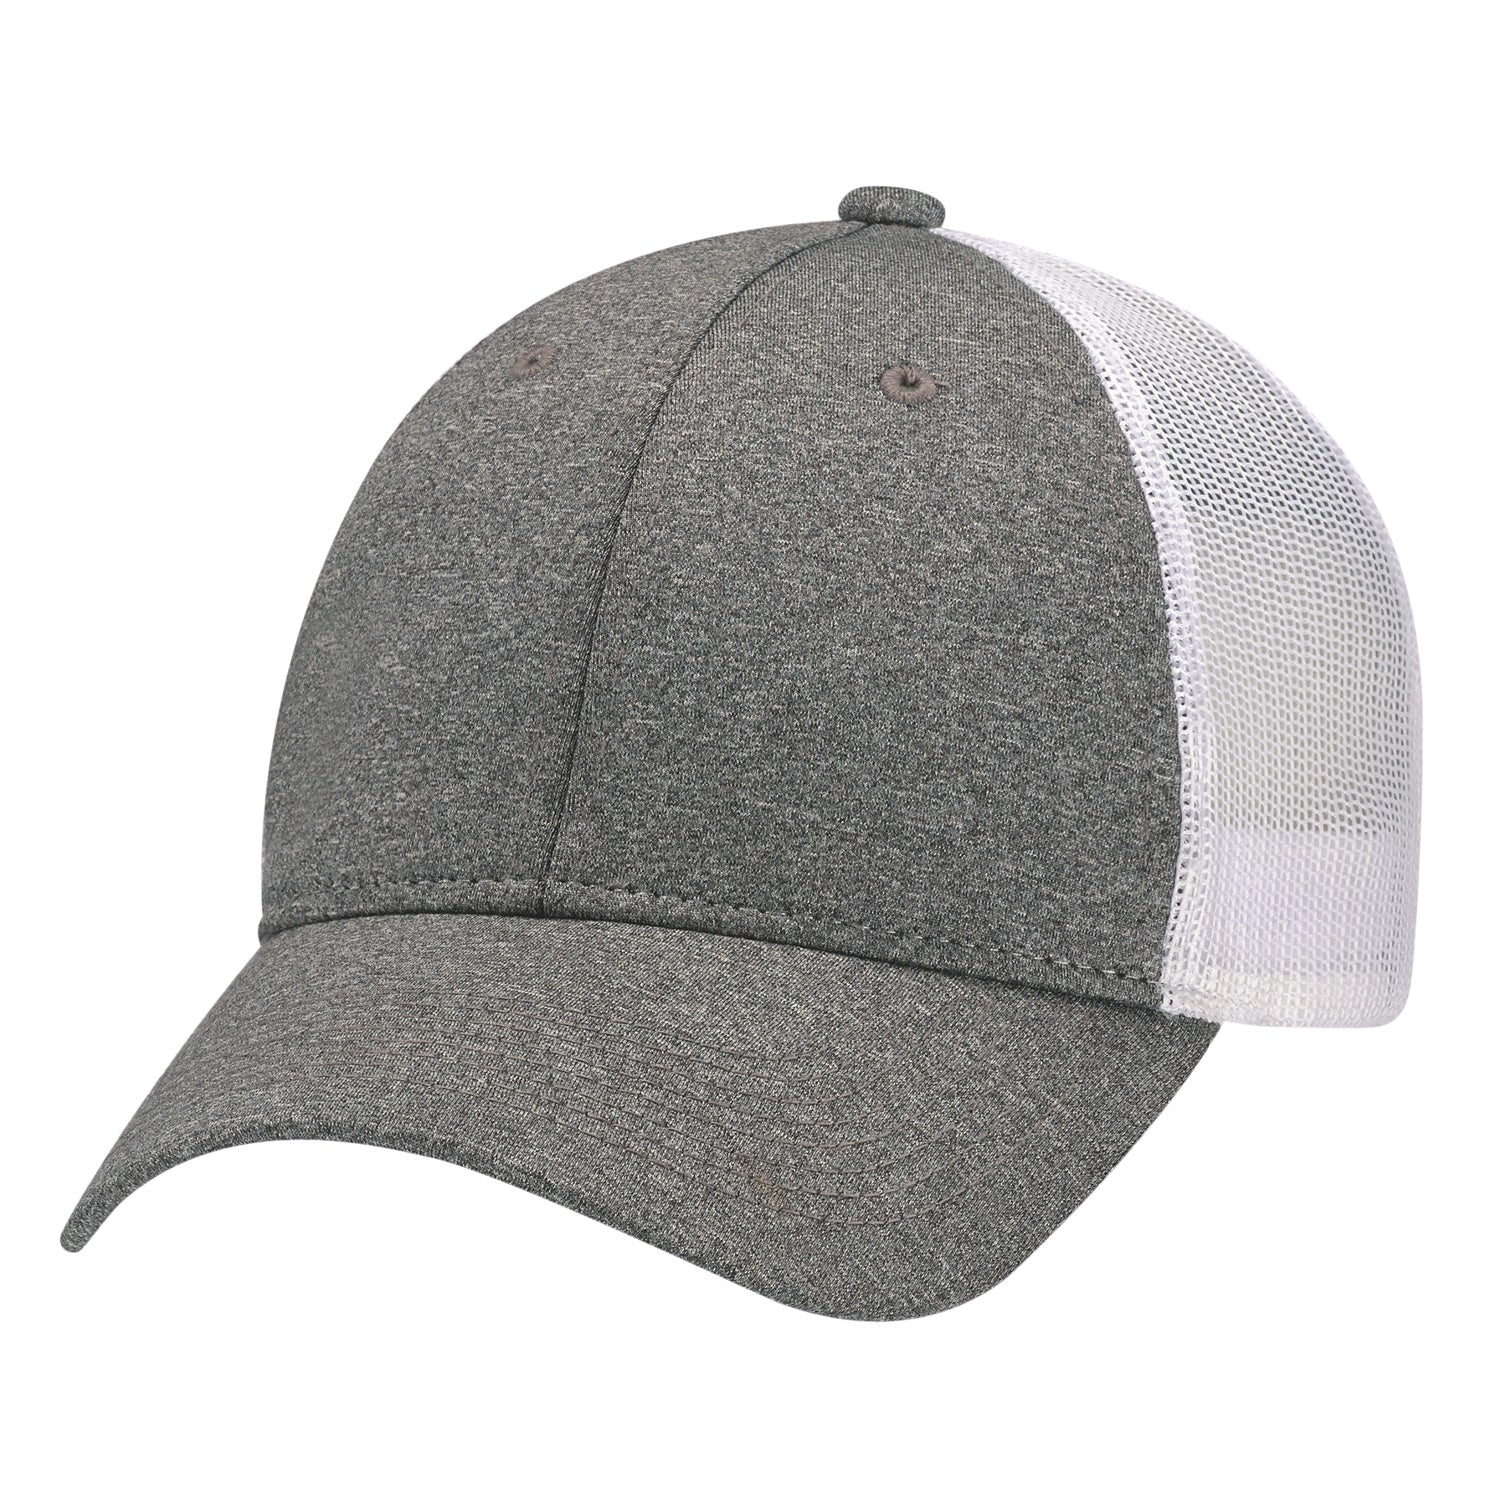 new product efbdc 968c9 AJM POLY HEATHER NYLON MESH CAP